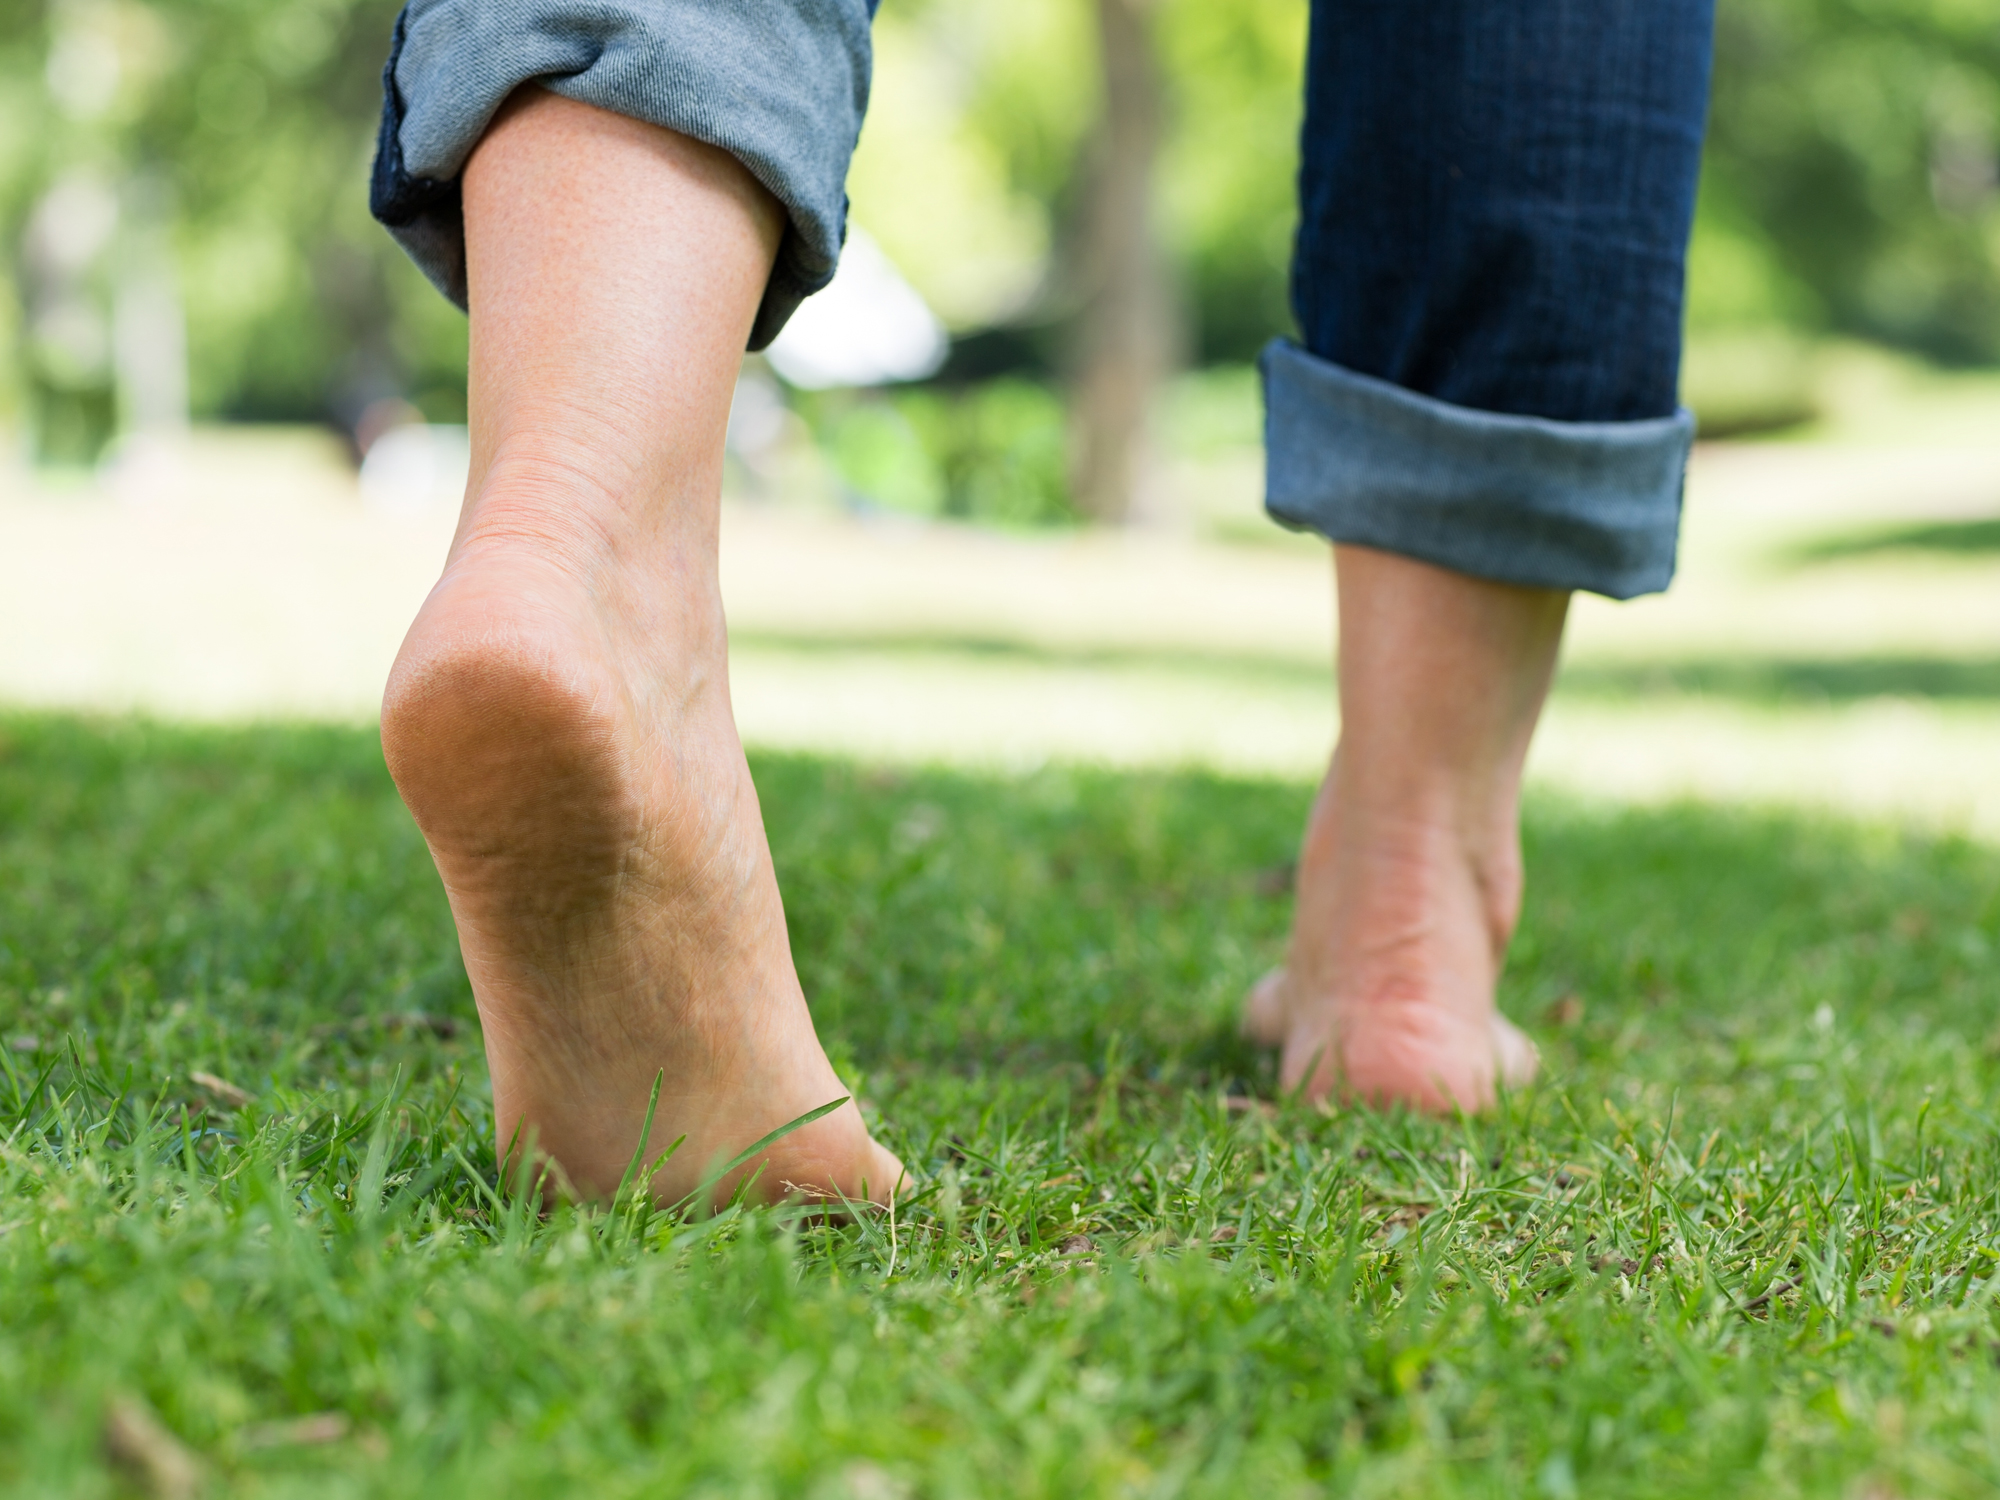 The science of walking barefoot